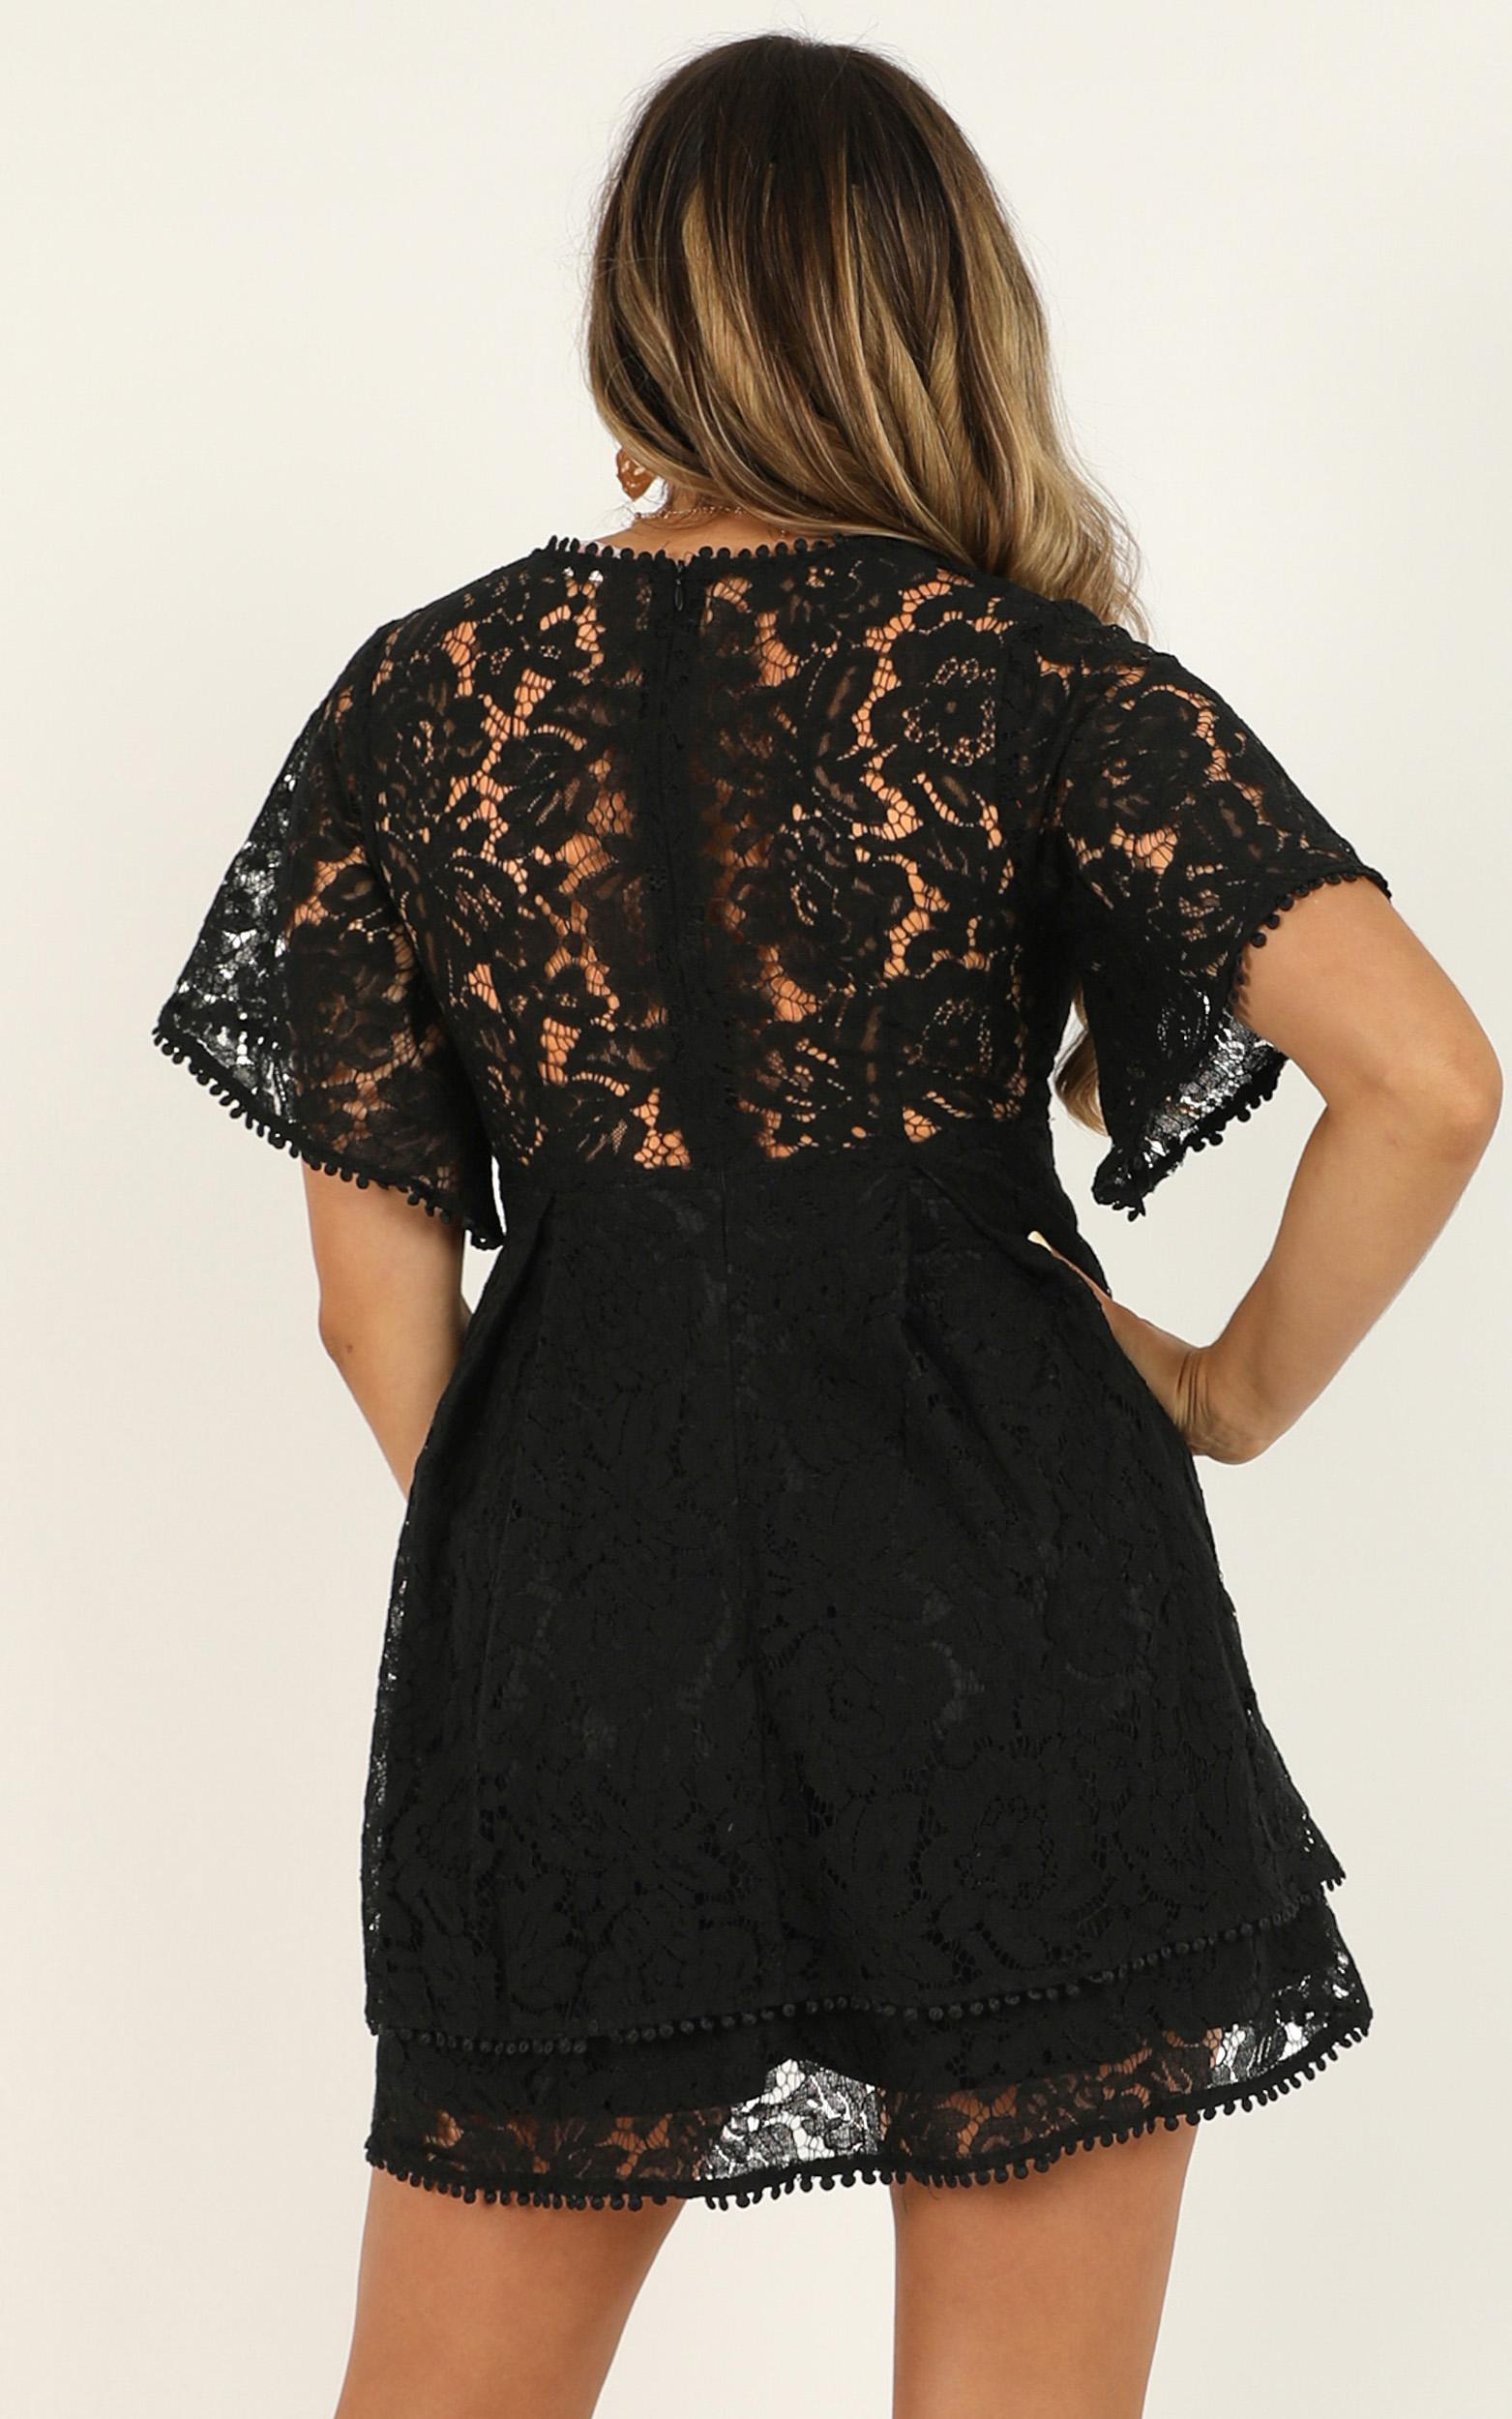 Do You Miss Me Dress in black lace - 20 (XXXXL), Black, hi-res image number null